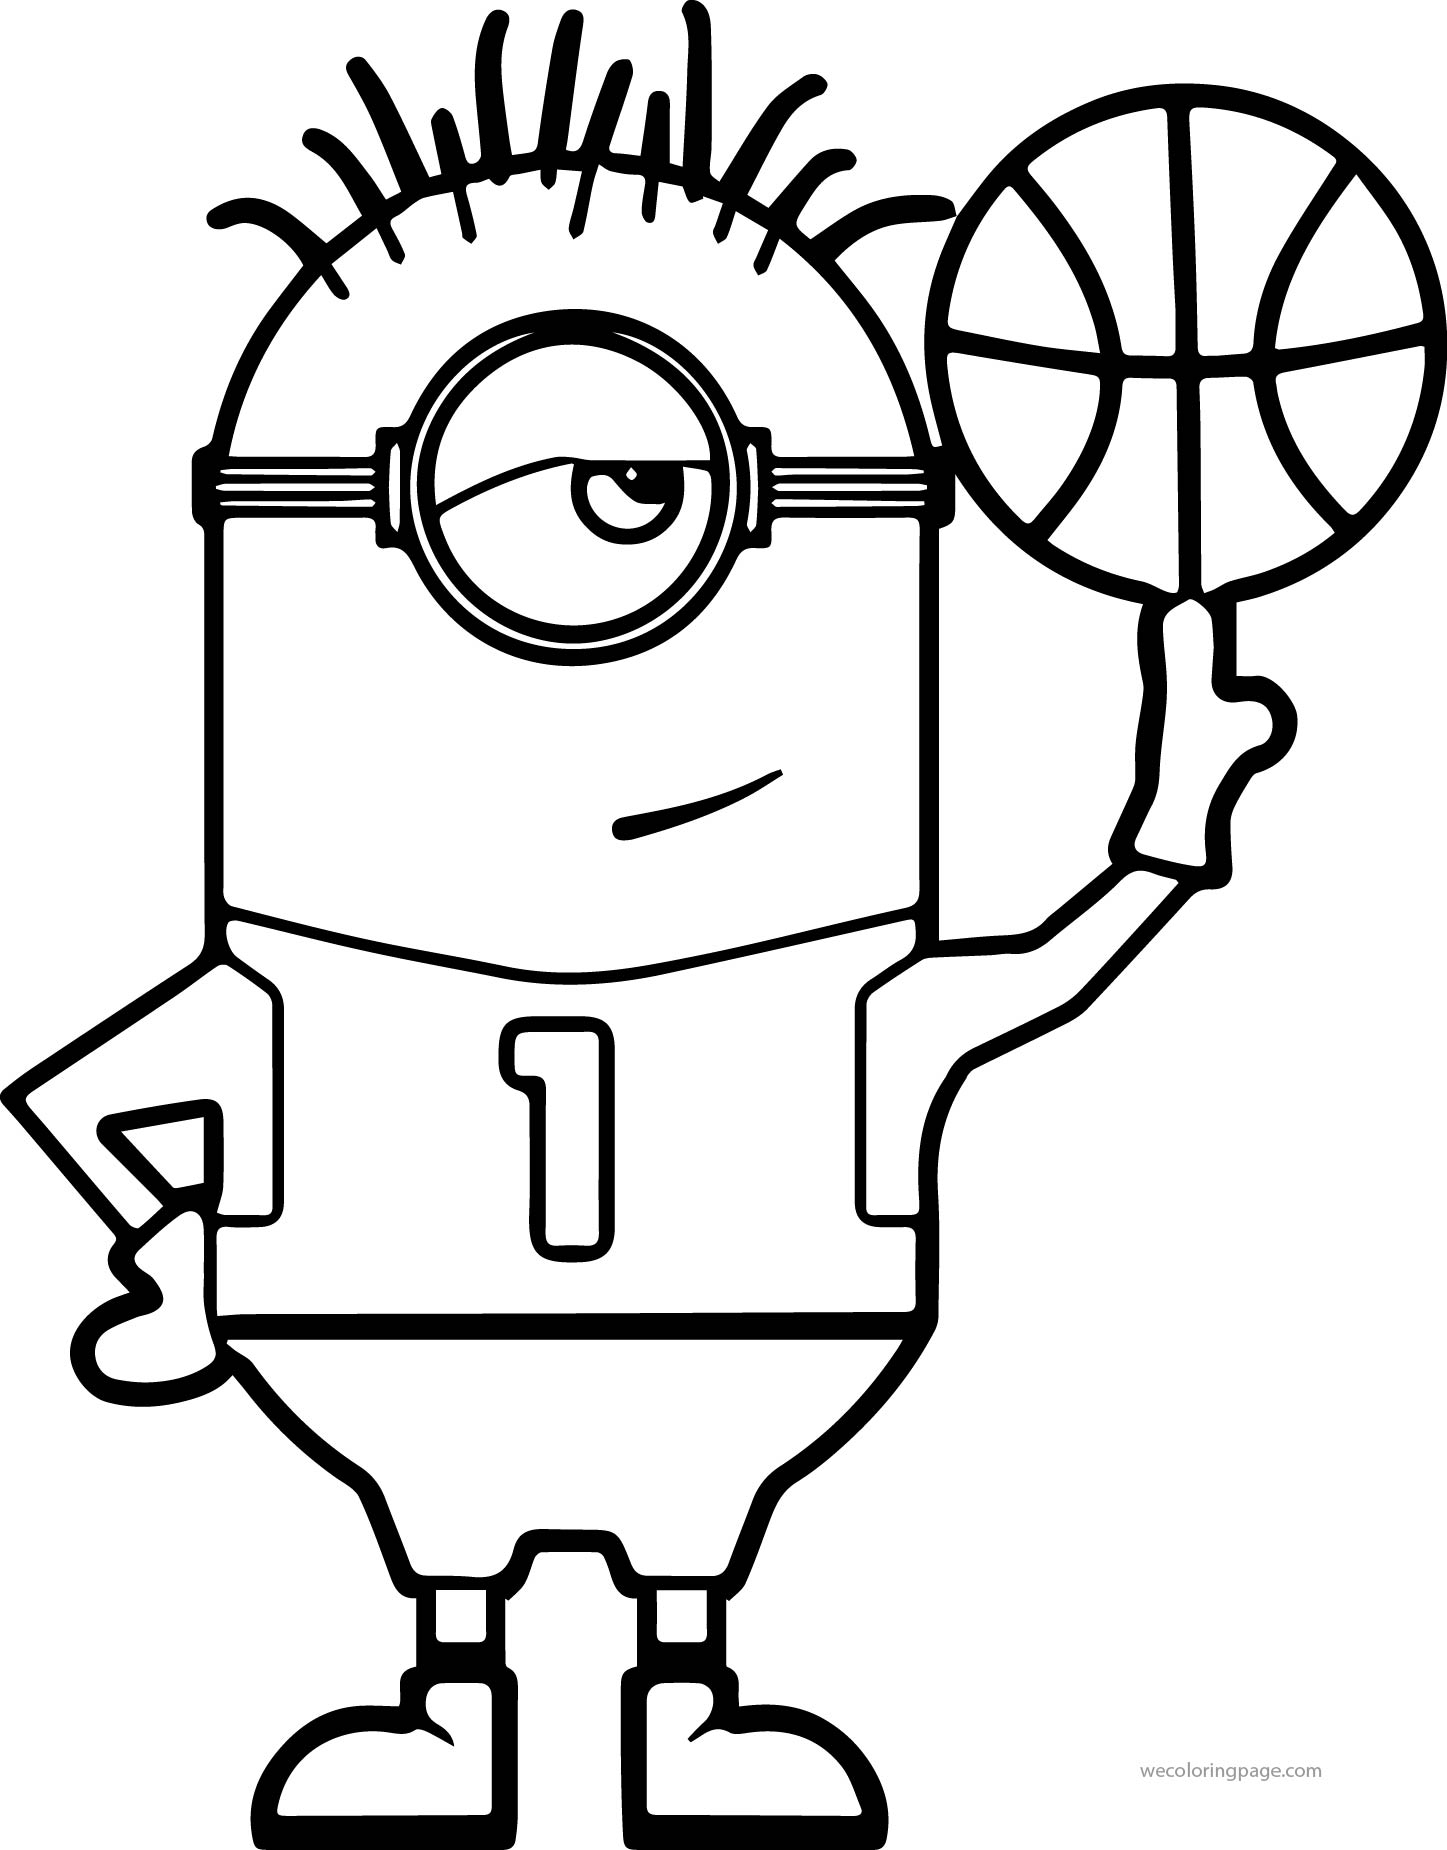 basketball coloring pages - minion turn basketball coloring page